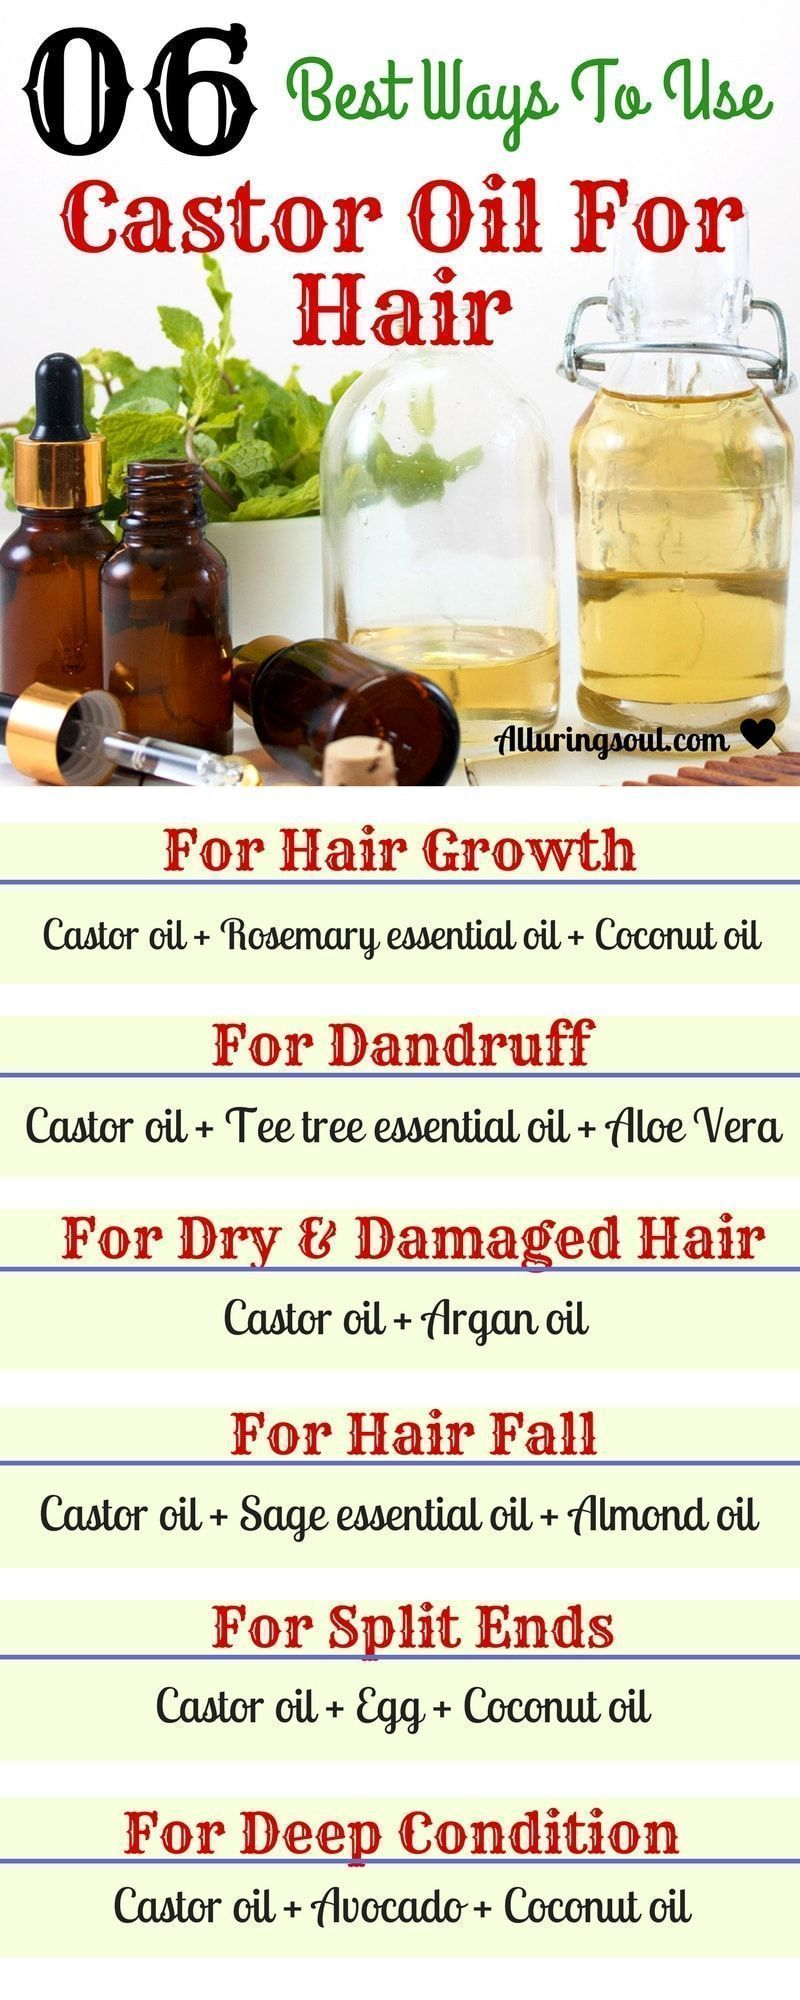 6 Most Effective Ways To Use Castor Oil For Hair Castor